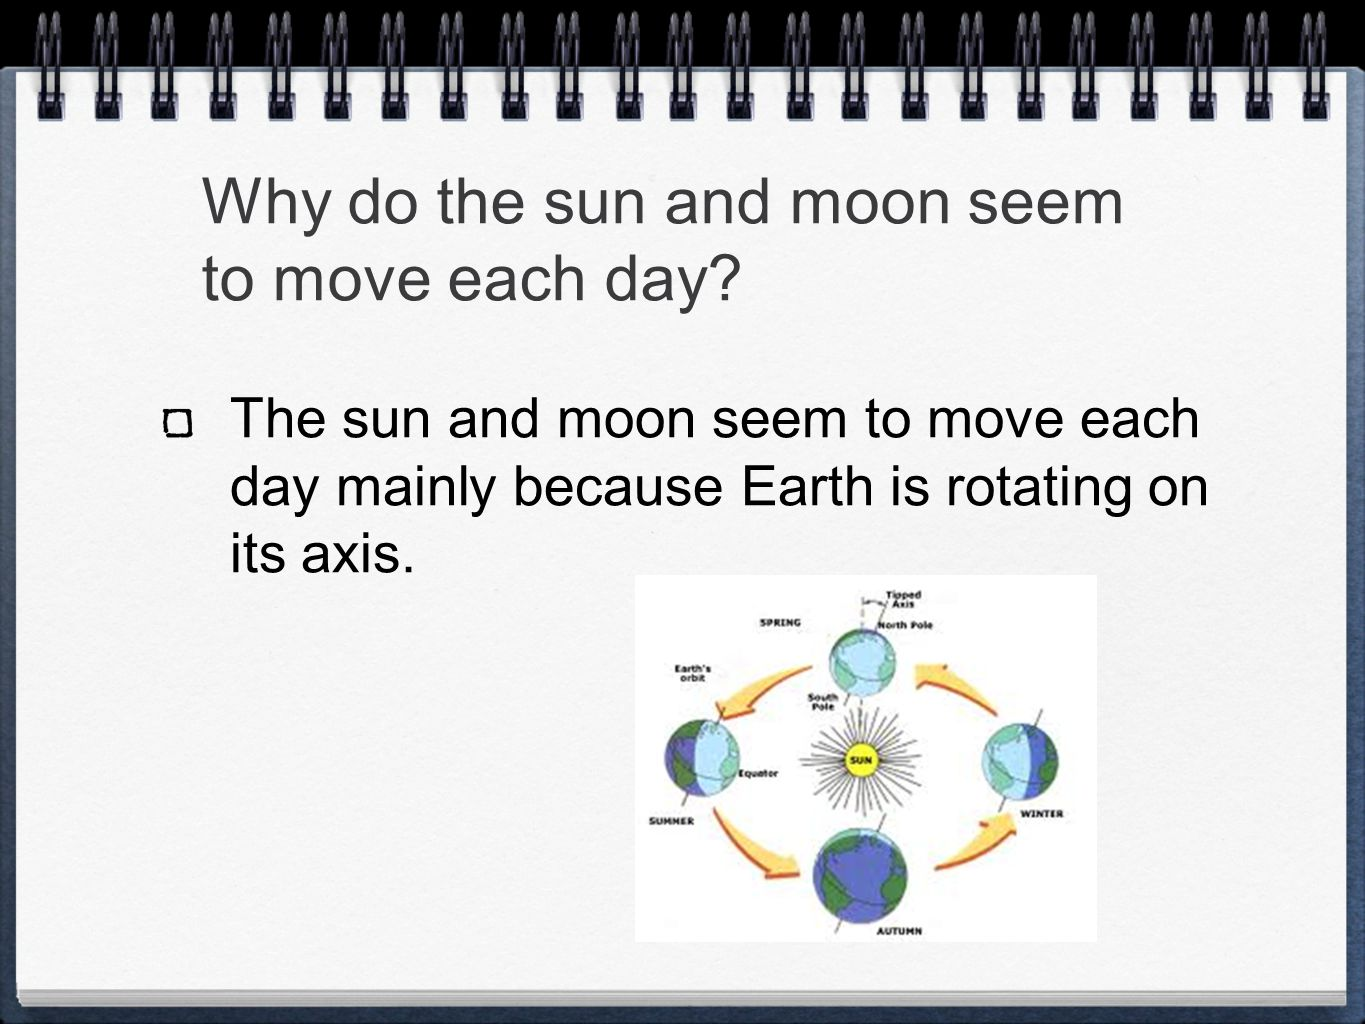 Why do the sun and moon seem to move each day